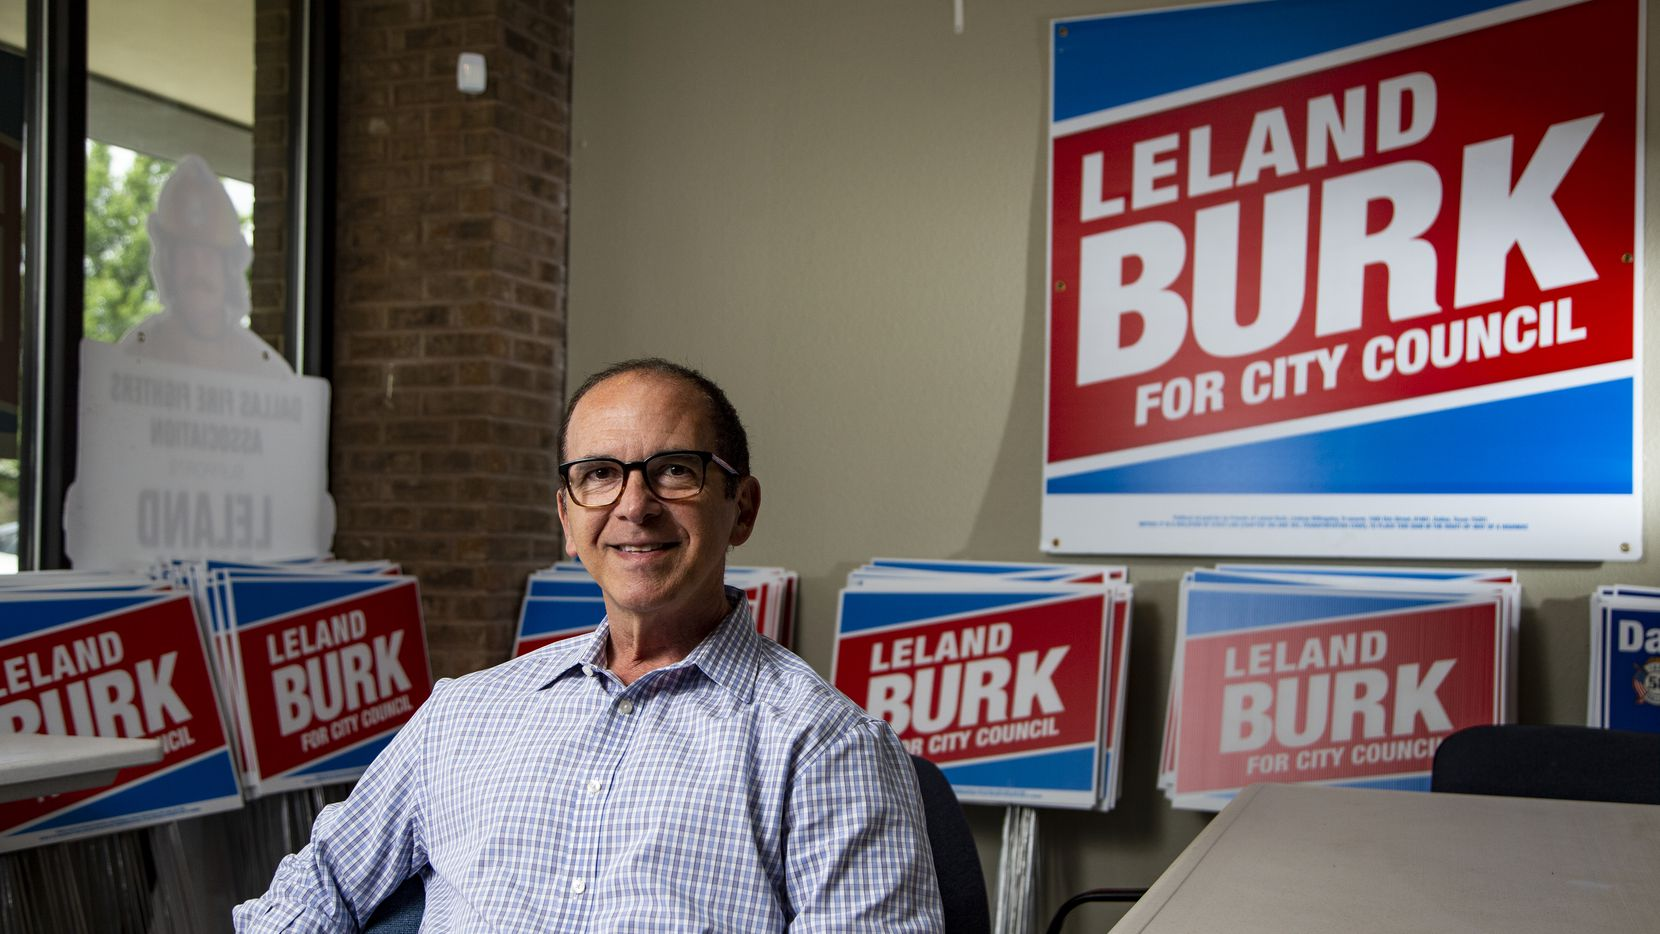 Leland Burk, a Dallas City Council candidate running  to represent District 13, poses for a photo at his campaign office in North Dallas, Friday, May 21, 2021. (Brandon Wade/Special Contributor)